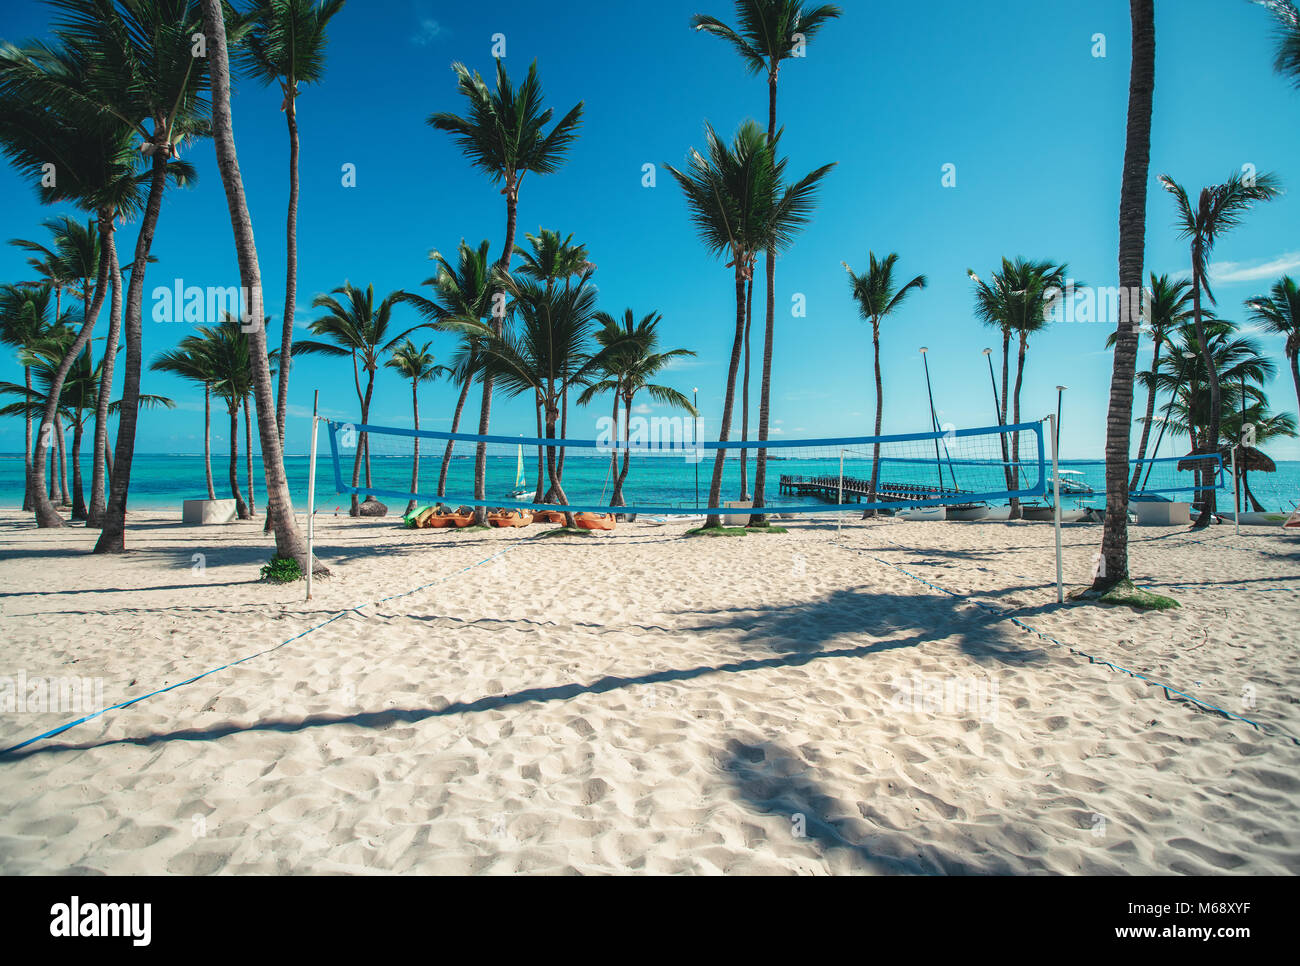 Volleyball net on tropical beach, caribbean sea. - Stock Image